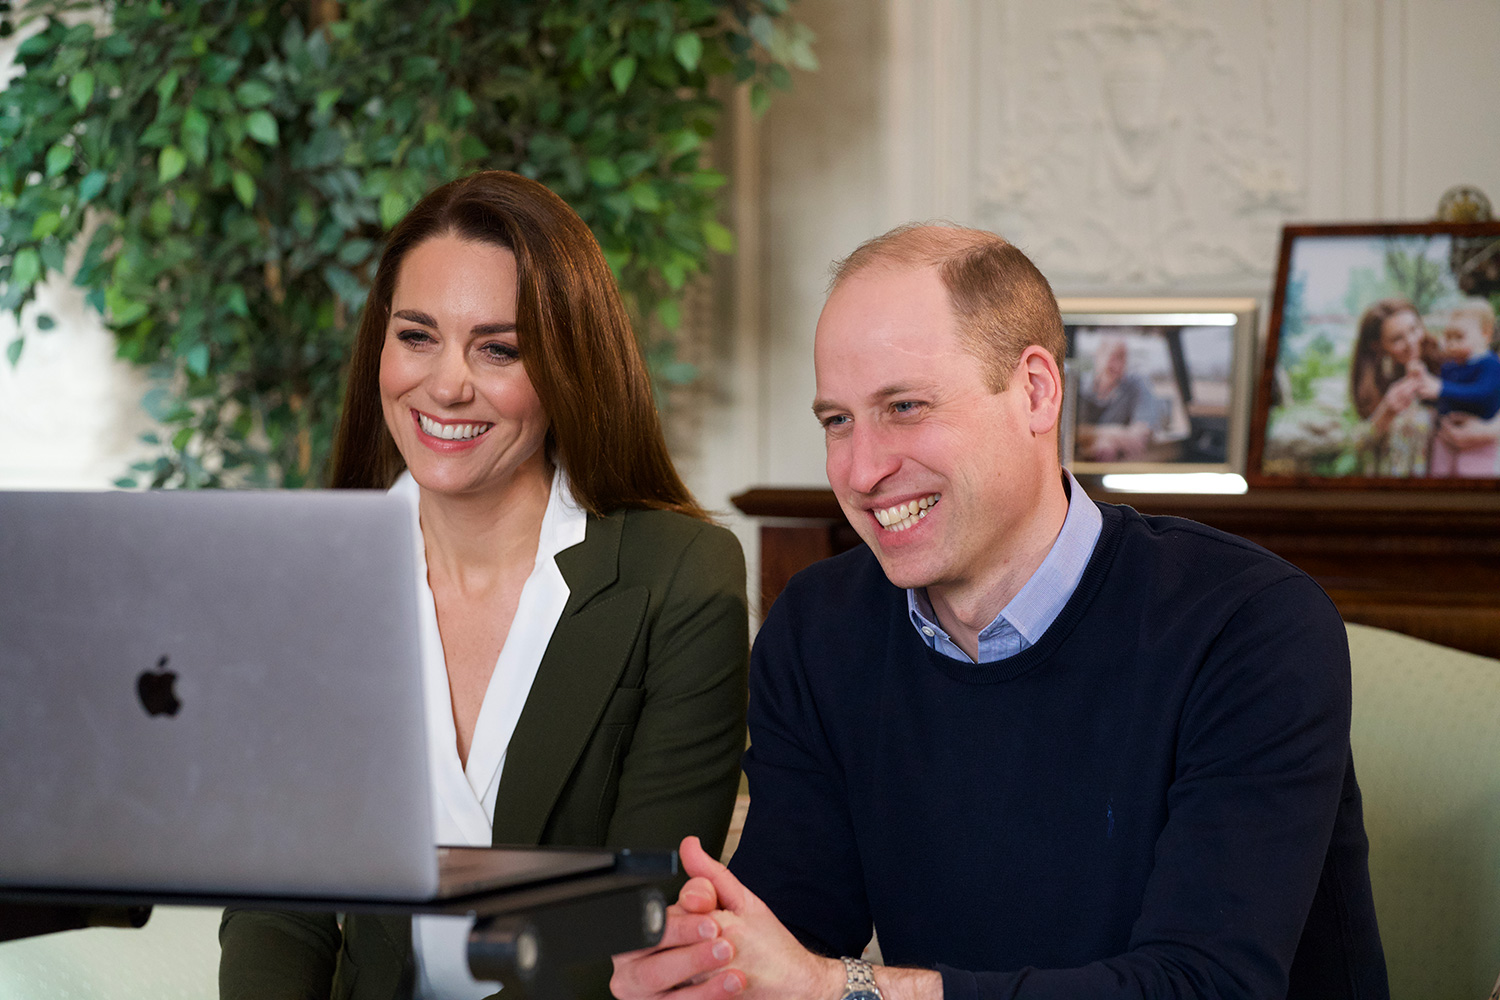 Kate and Prince William Talk with High Risk Patients About COVID Vaccine